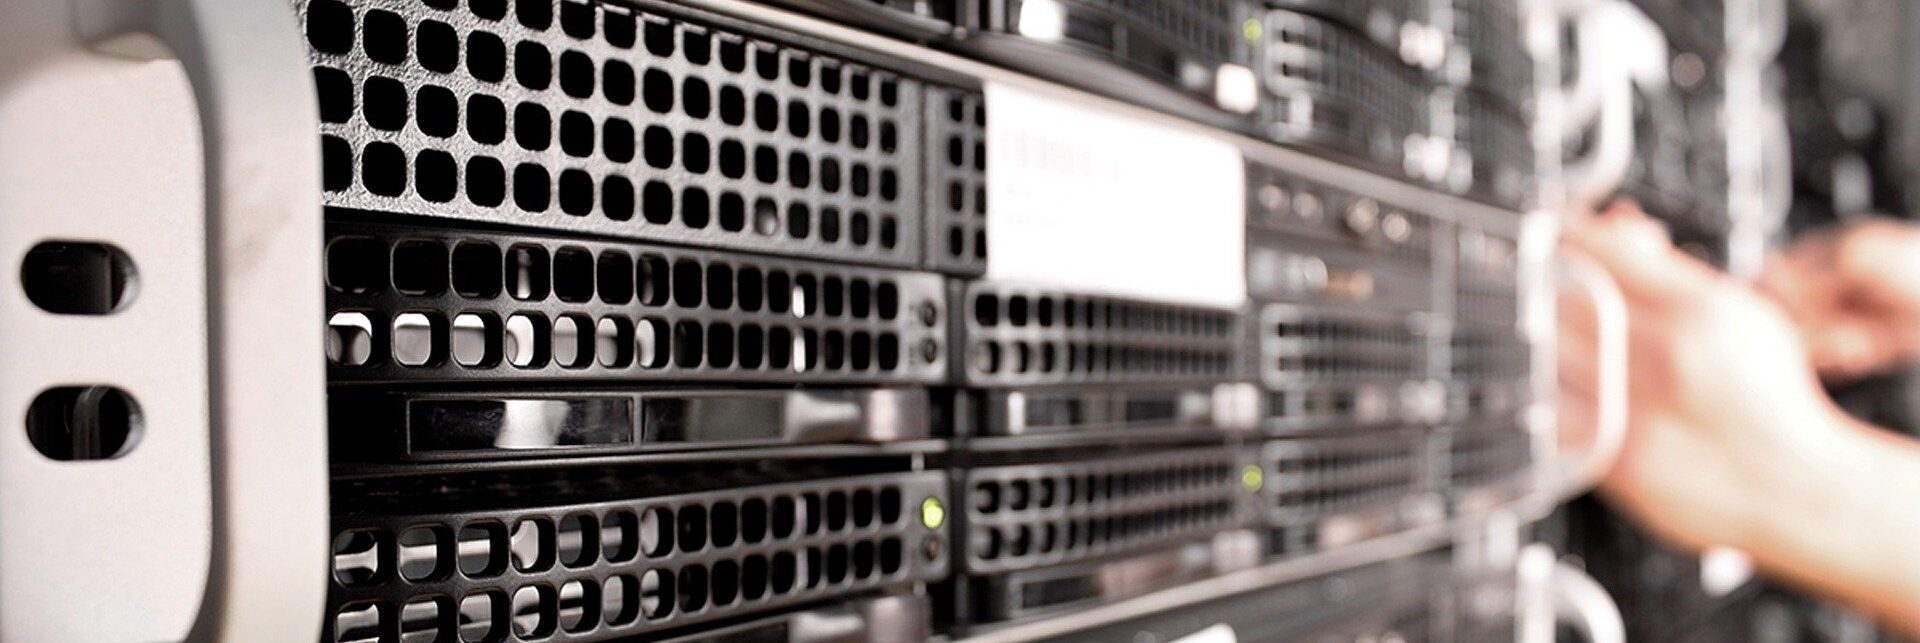 On Premise Servers and Cloud Services